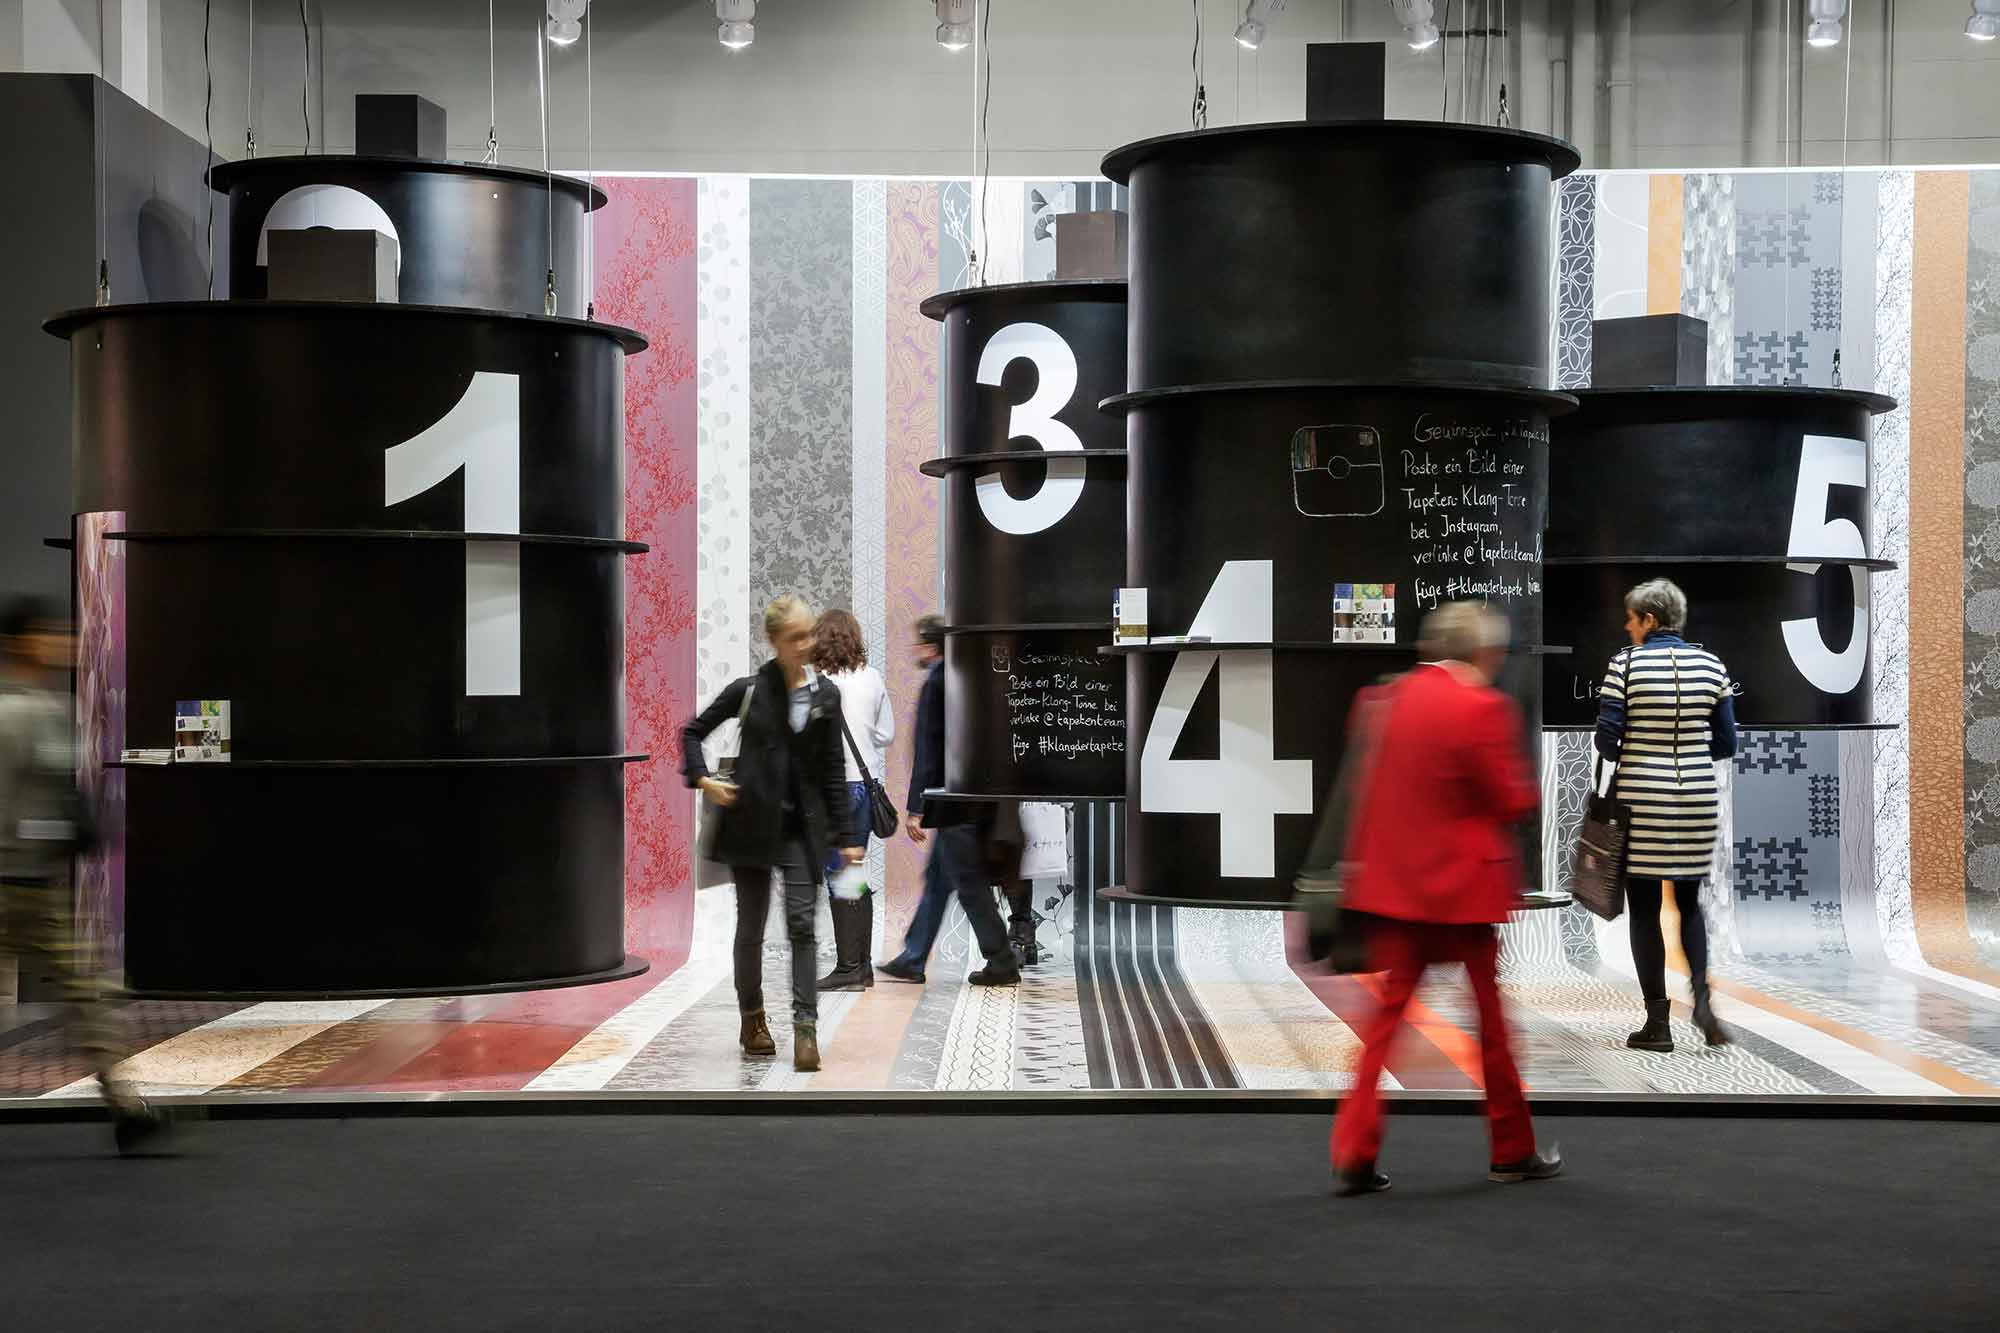 IMM Cologne 2020 Event Guide imm cologne 2020 IMM Cologne 2020 Event Guide imm cologne 2020 event guide 4